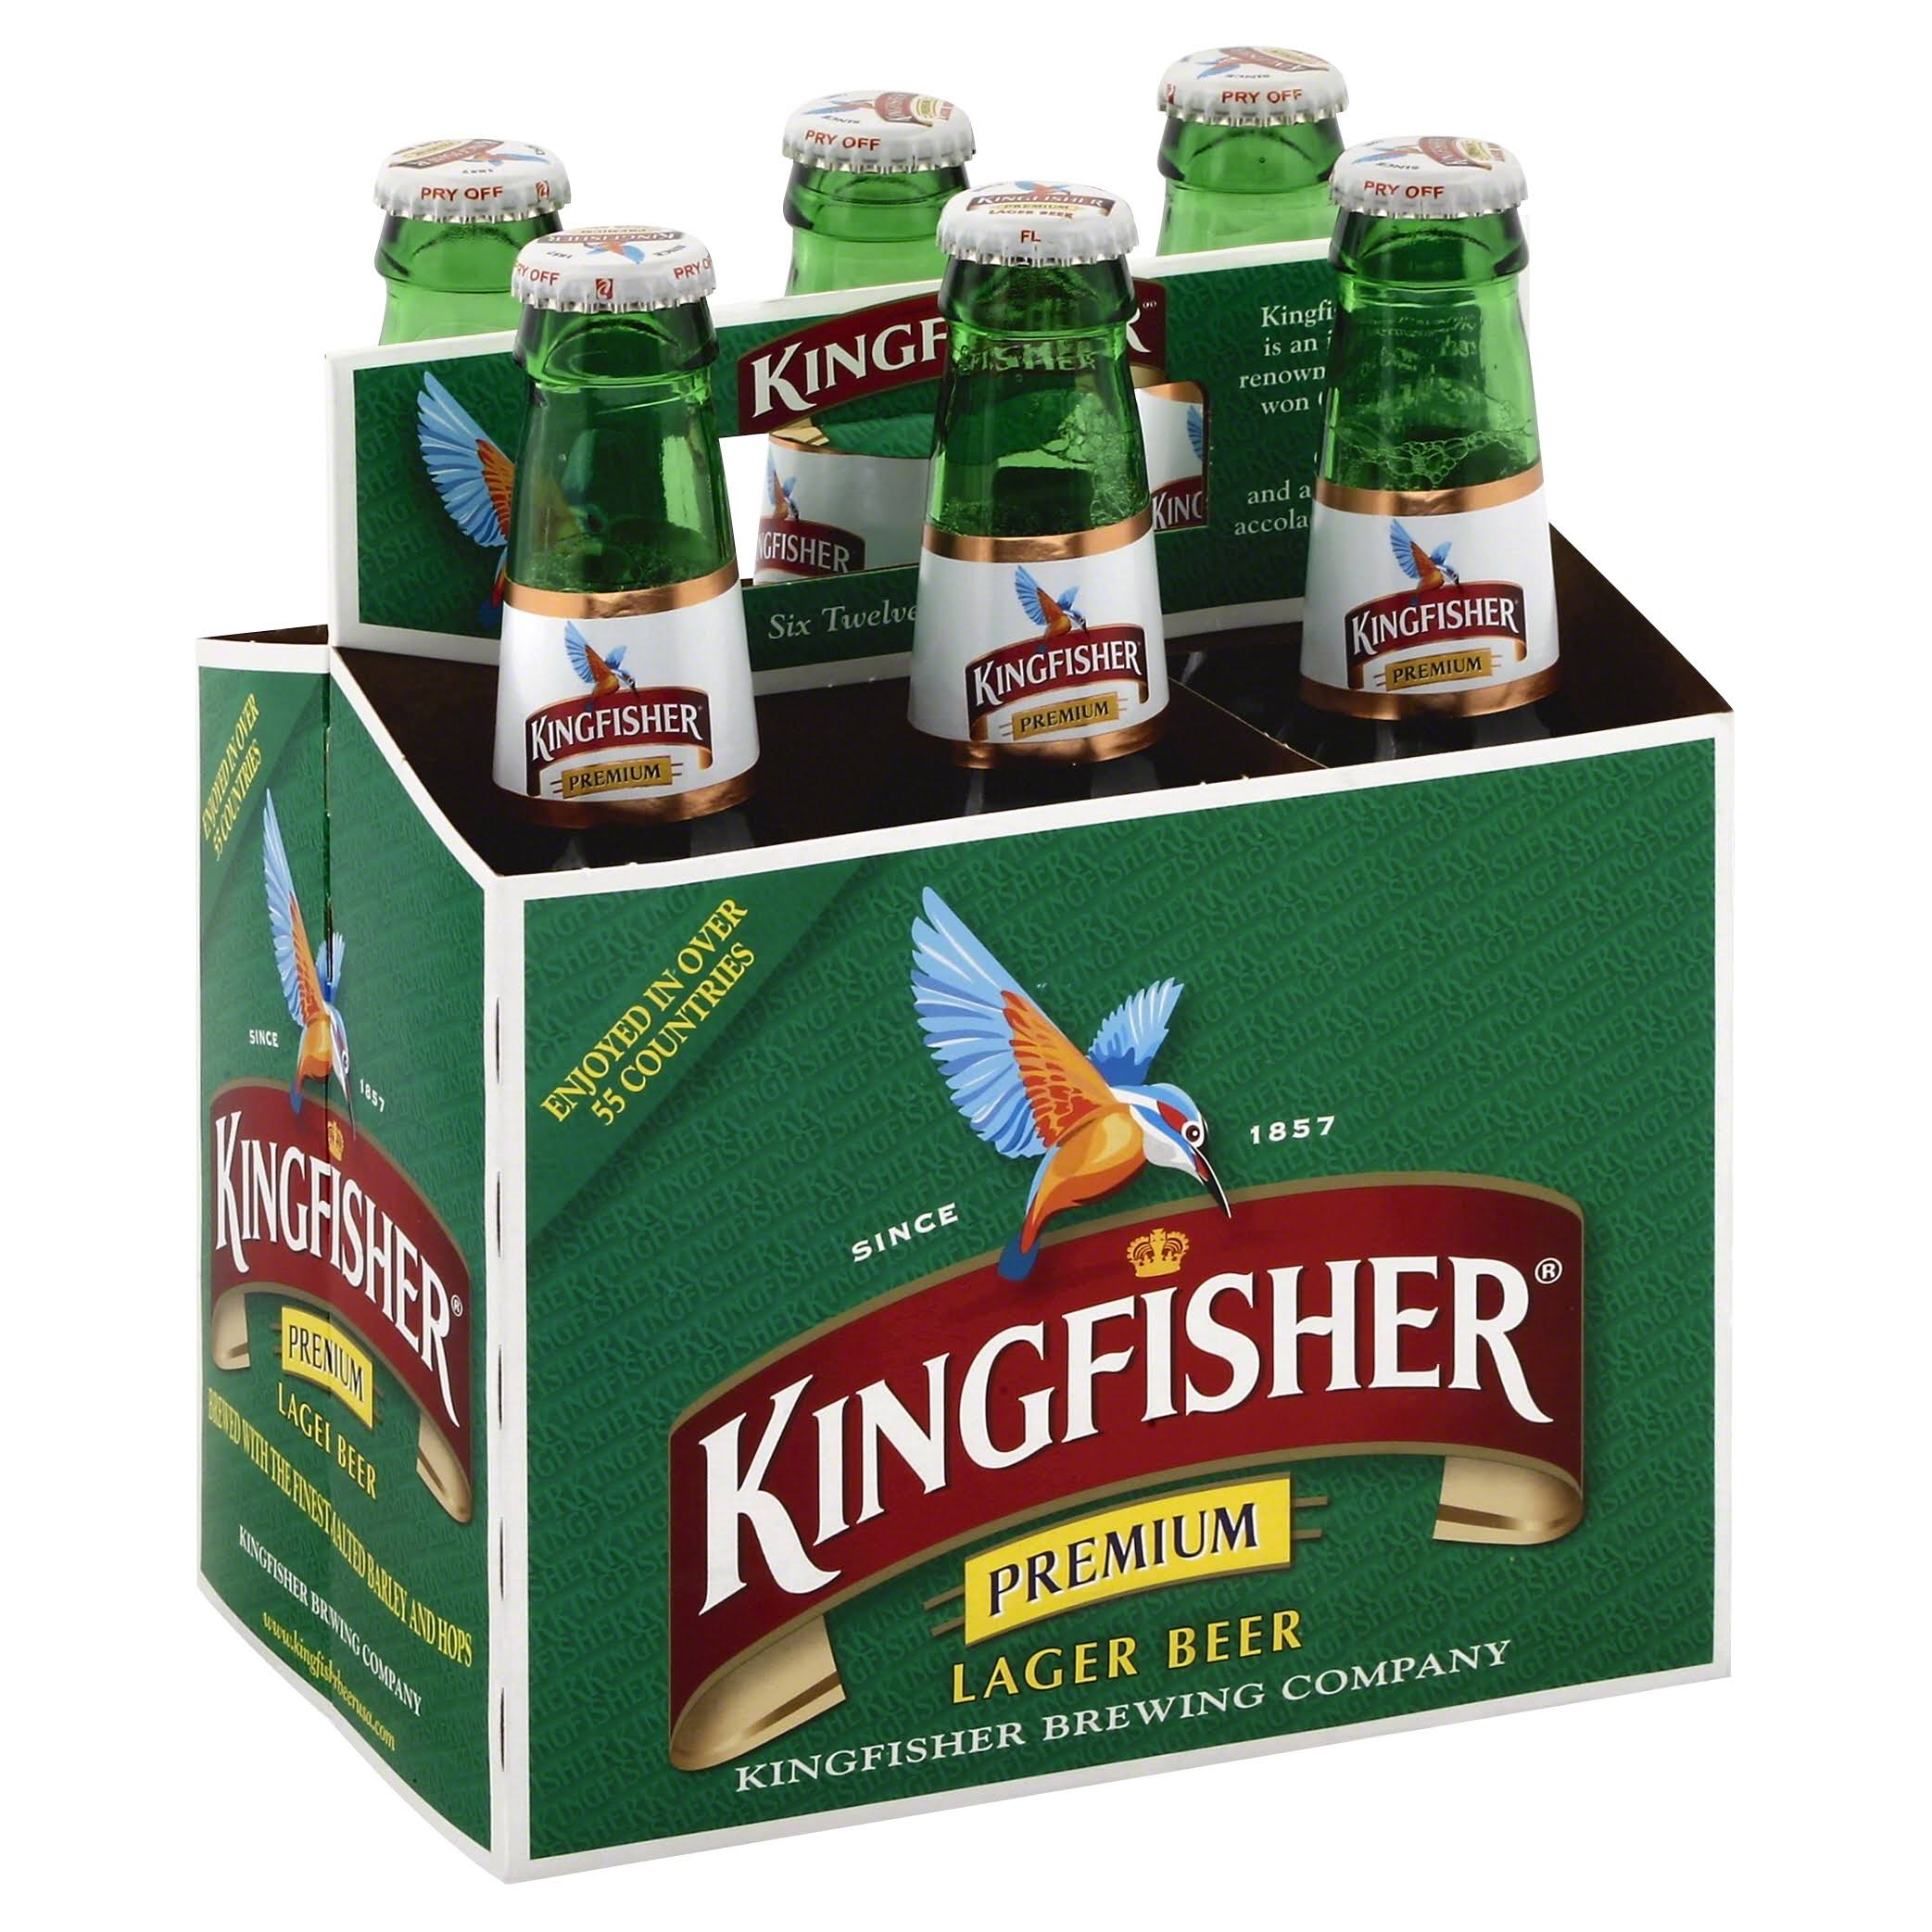 Kingfisher Lager Beer Premium